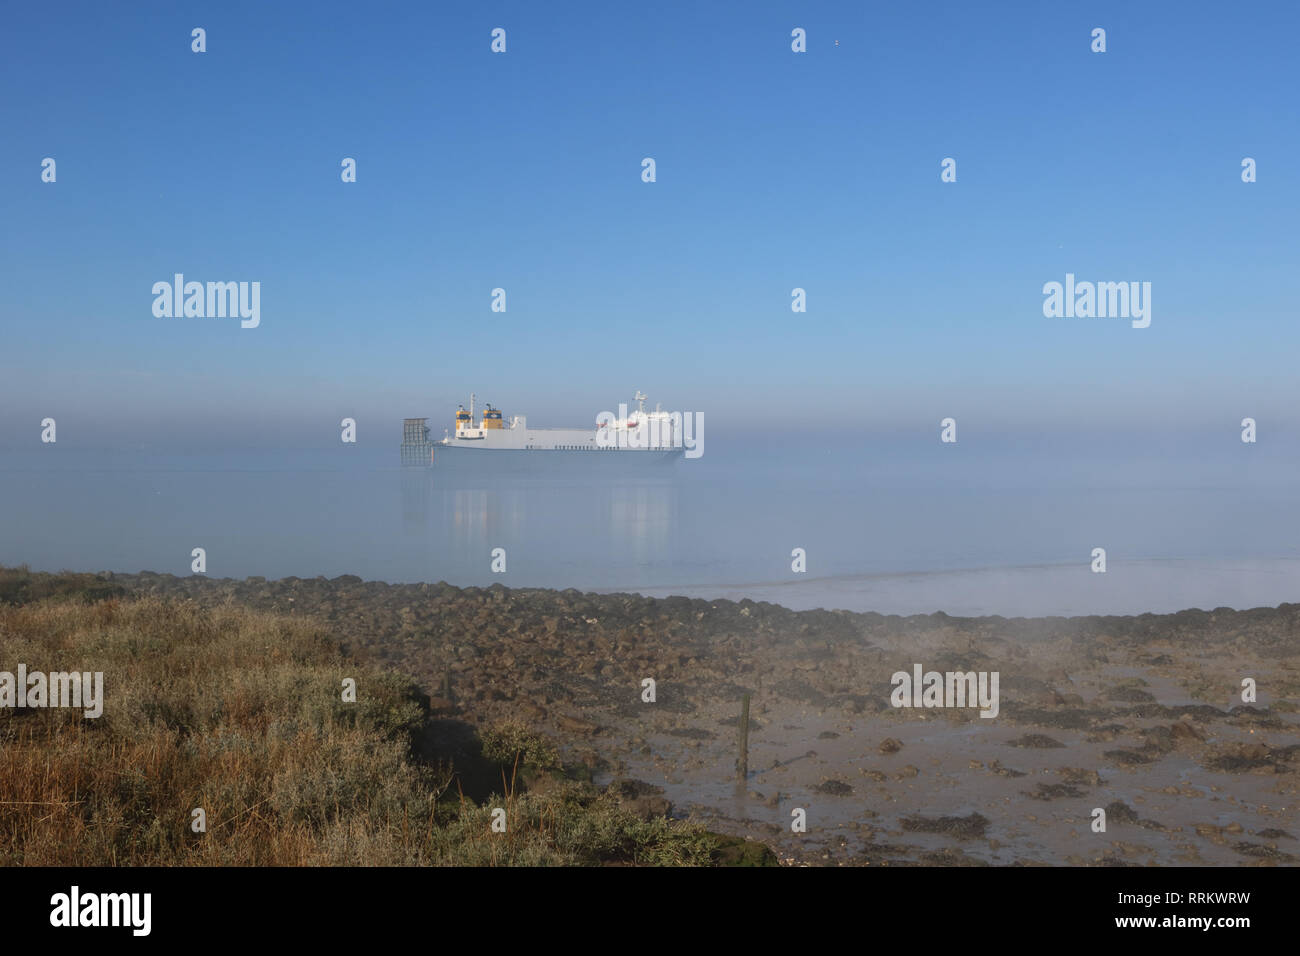 The Celestine cargo ship sails along the Thames Estuary before the mist had burnt away at Cliffe in Kent. - Stock Image